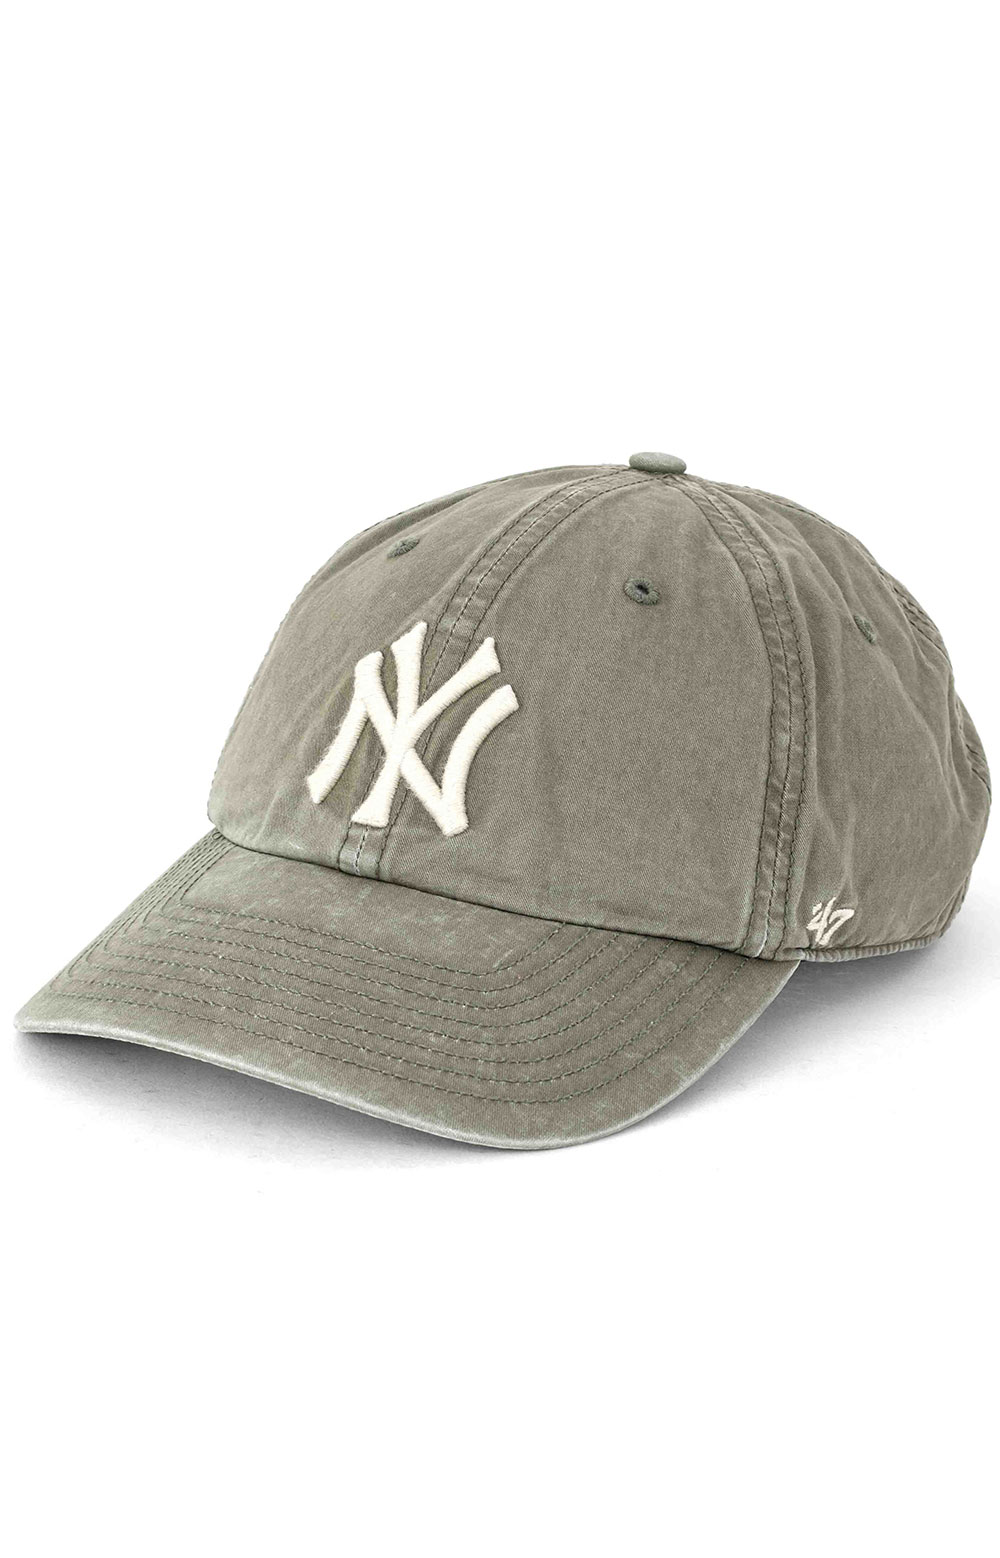 New York Yankees Hudson 47 Clean Up Cap - Canopy Green